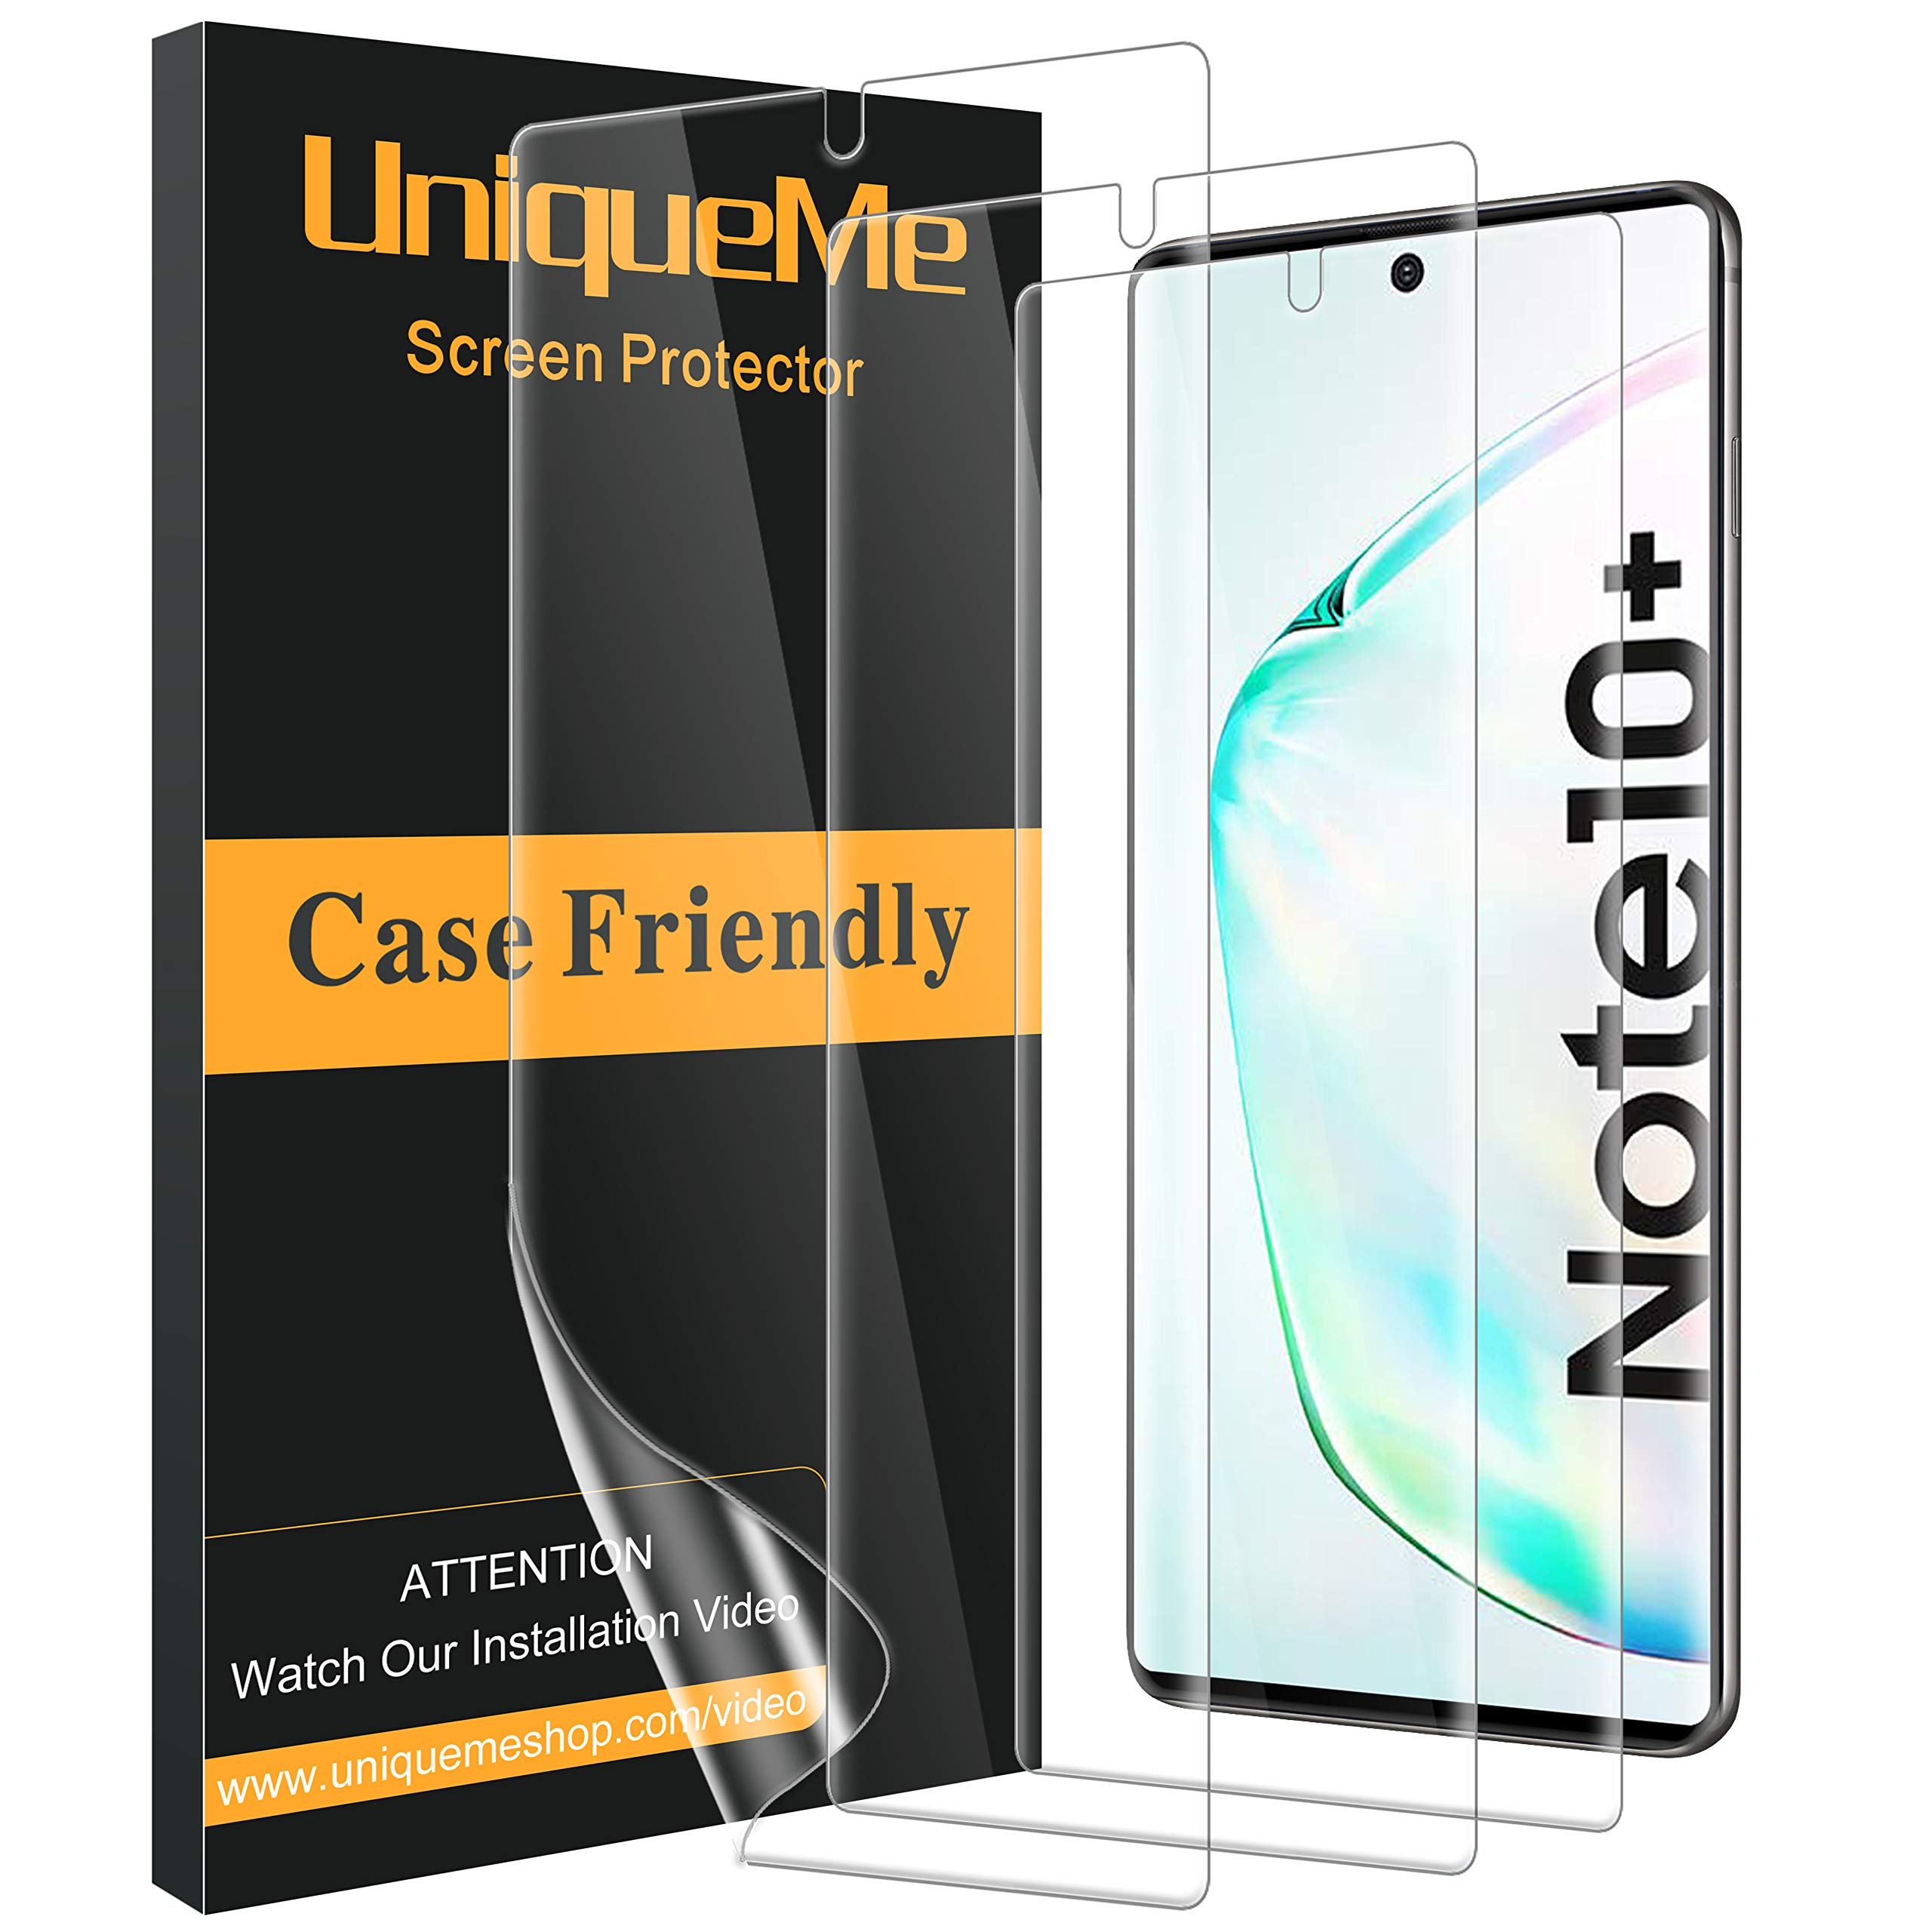 [3 Pack] UniqueMe Screen Protector Compatible with Samsung Galaxy Note 10 Plus/Samsung Galaxy Note 10+ / Note 10 Plus 5G,[Fingerprint Available] TPU Film with Lifetime Replacement Warranty by UniqueMe